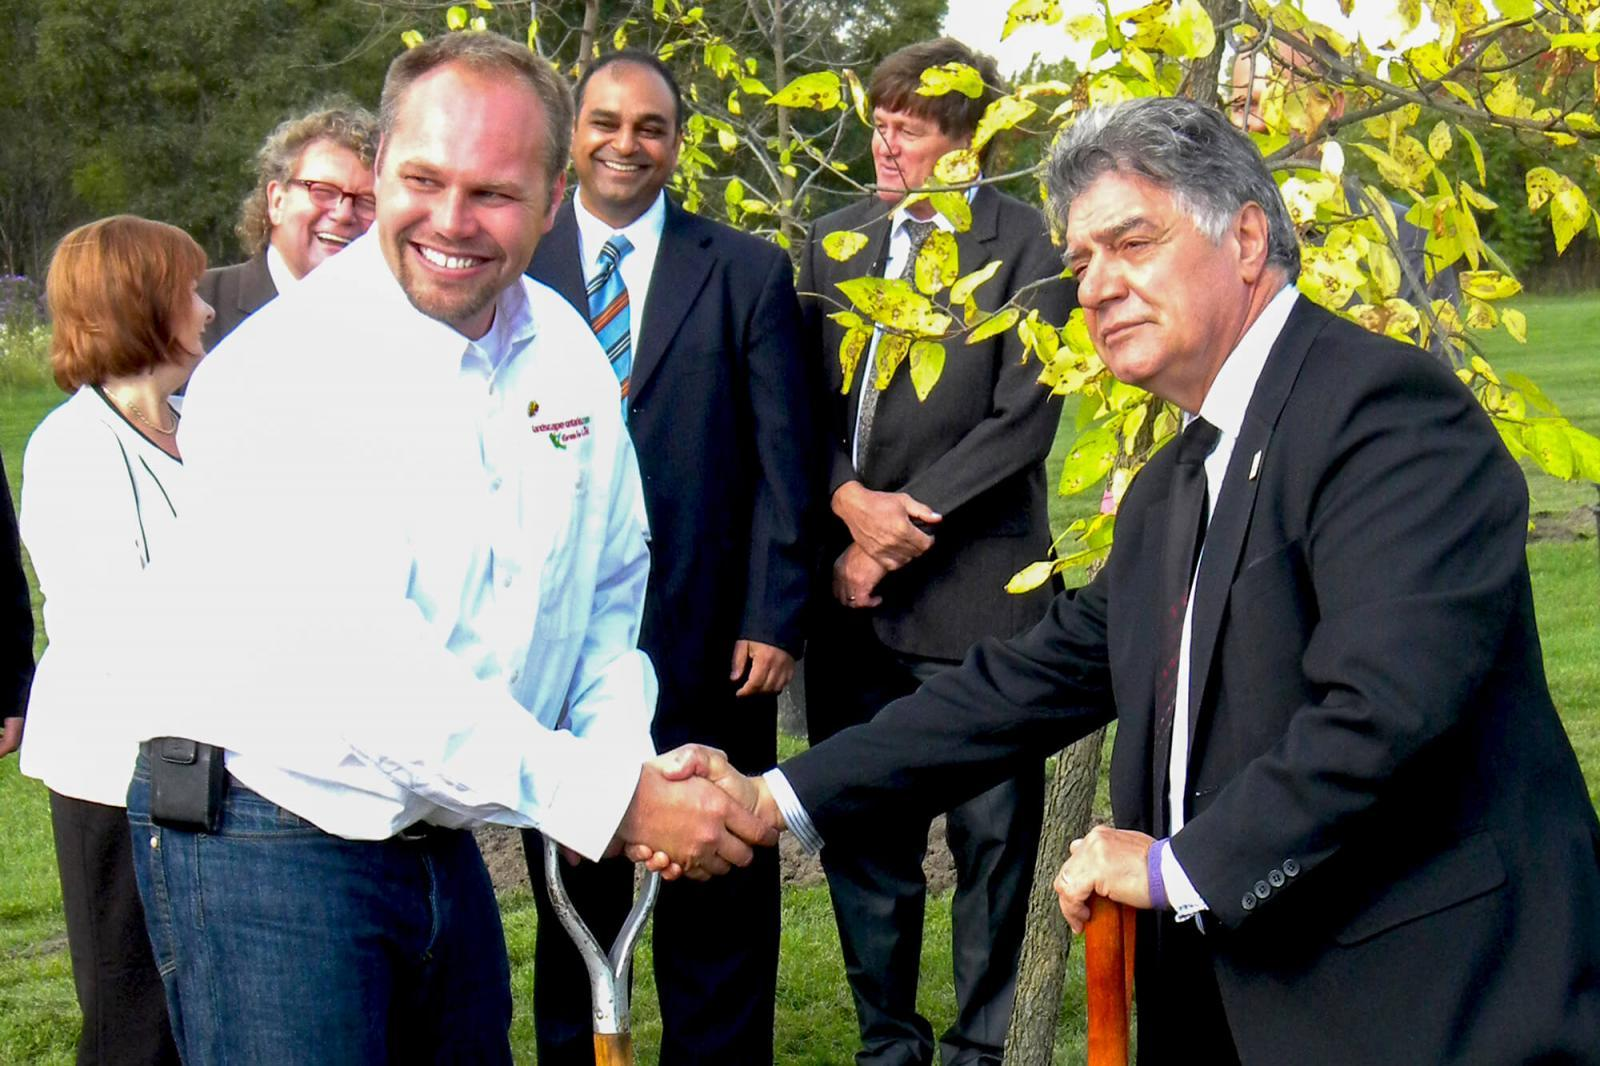 London Chapter president Grant Harrison and London mayor Joe Fontana plant the first tree as part of the Veterans Memorial Parkway project.